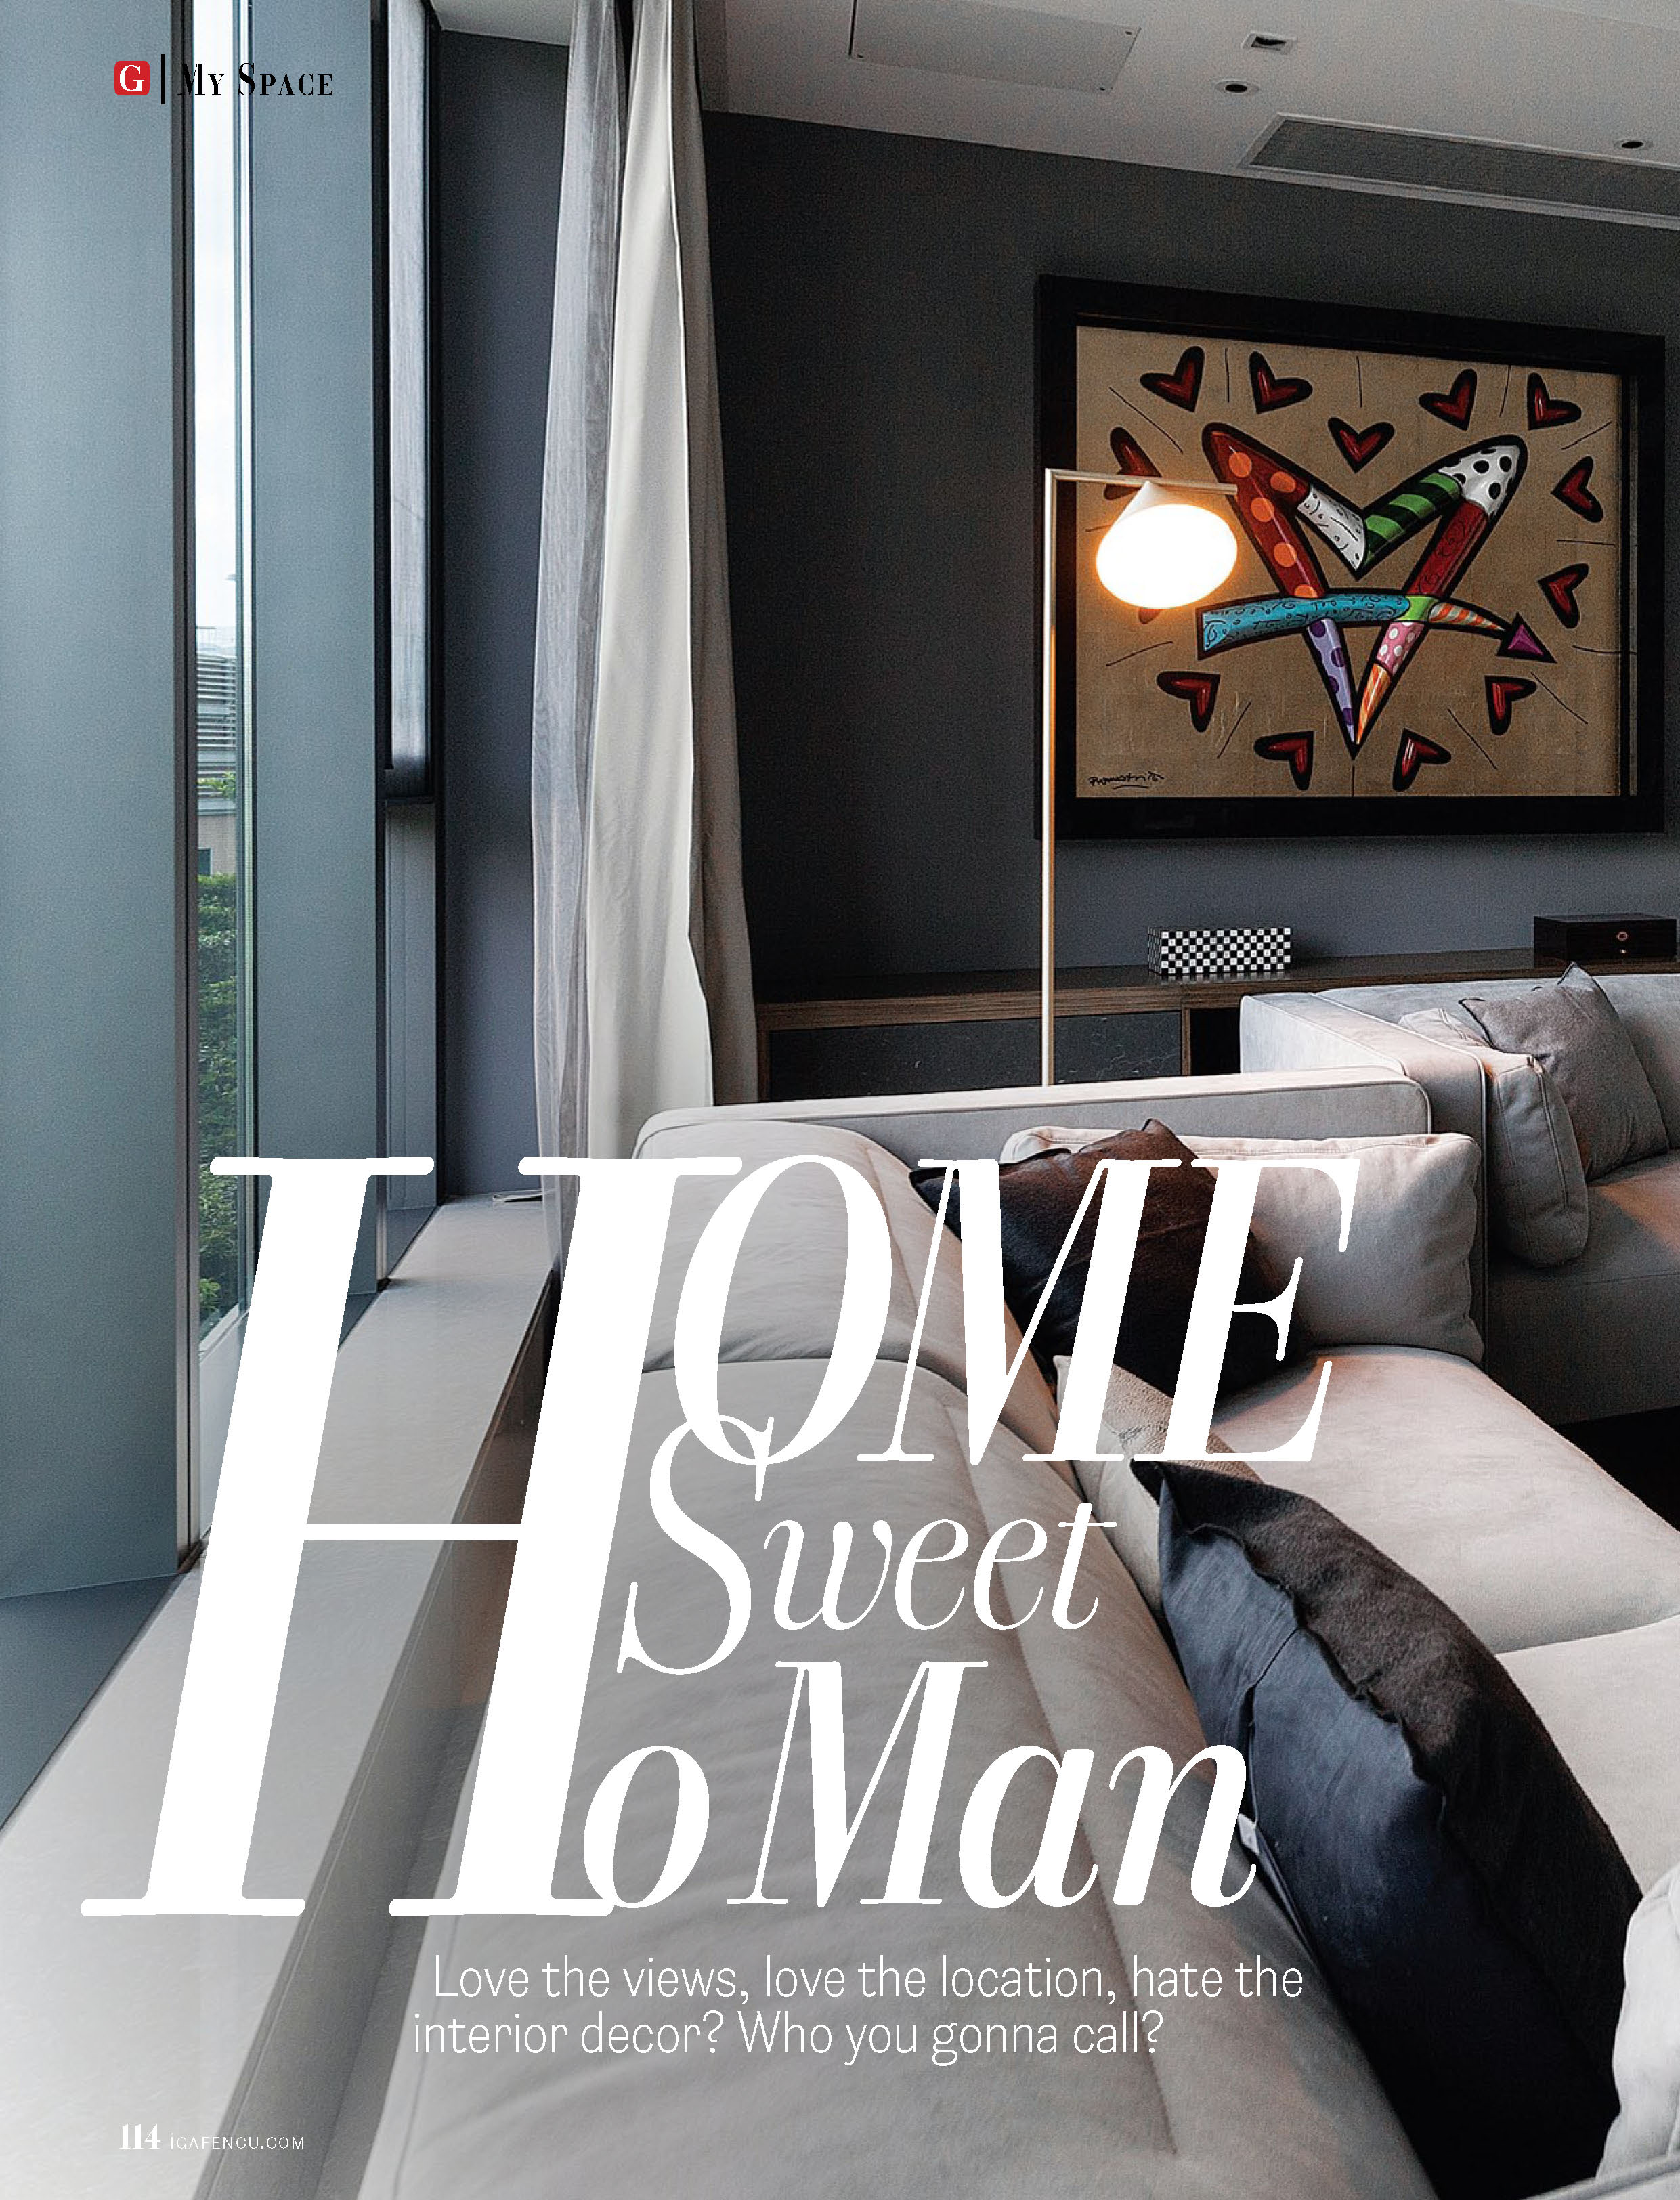 Hotel Style Home | Gafencu | March 2019 Issue - page1